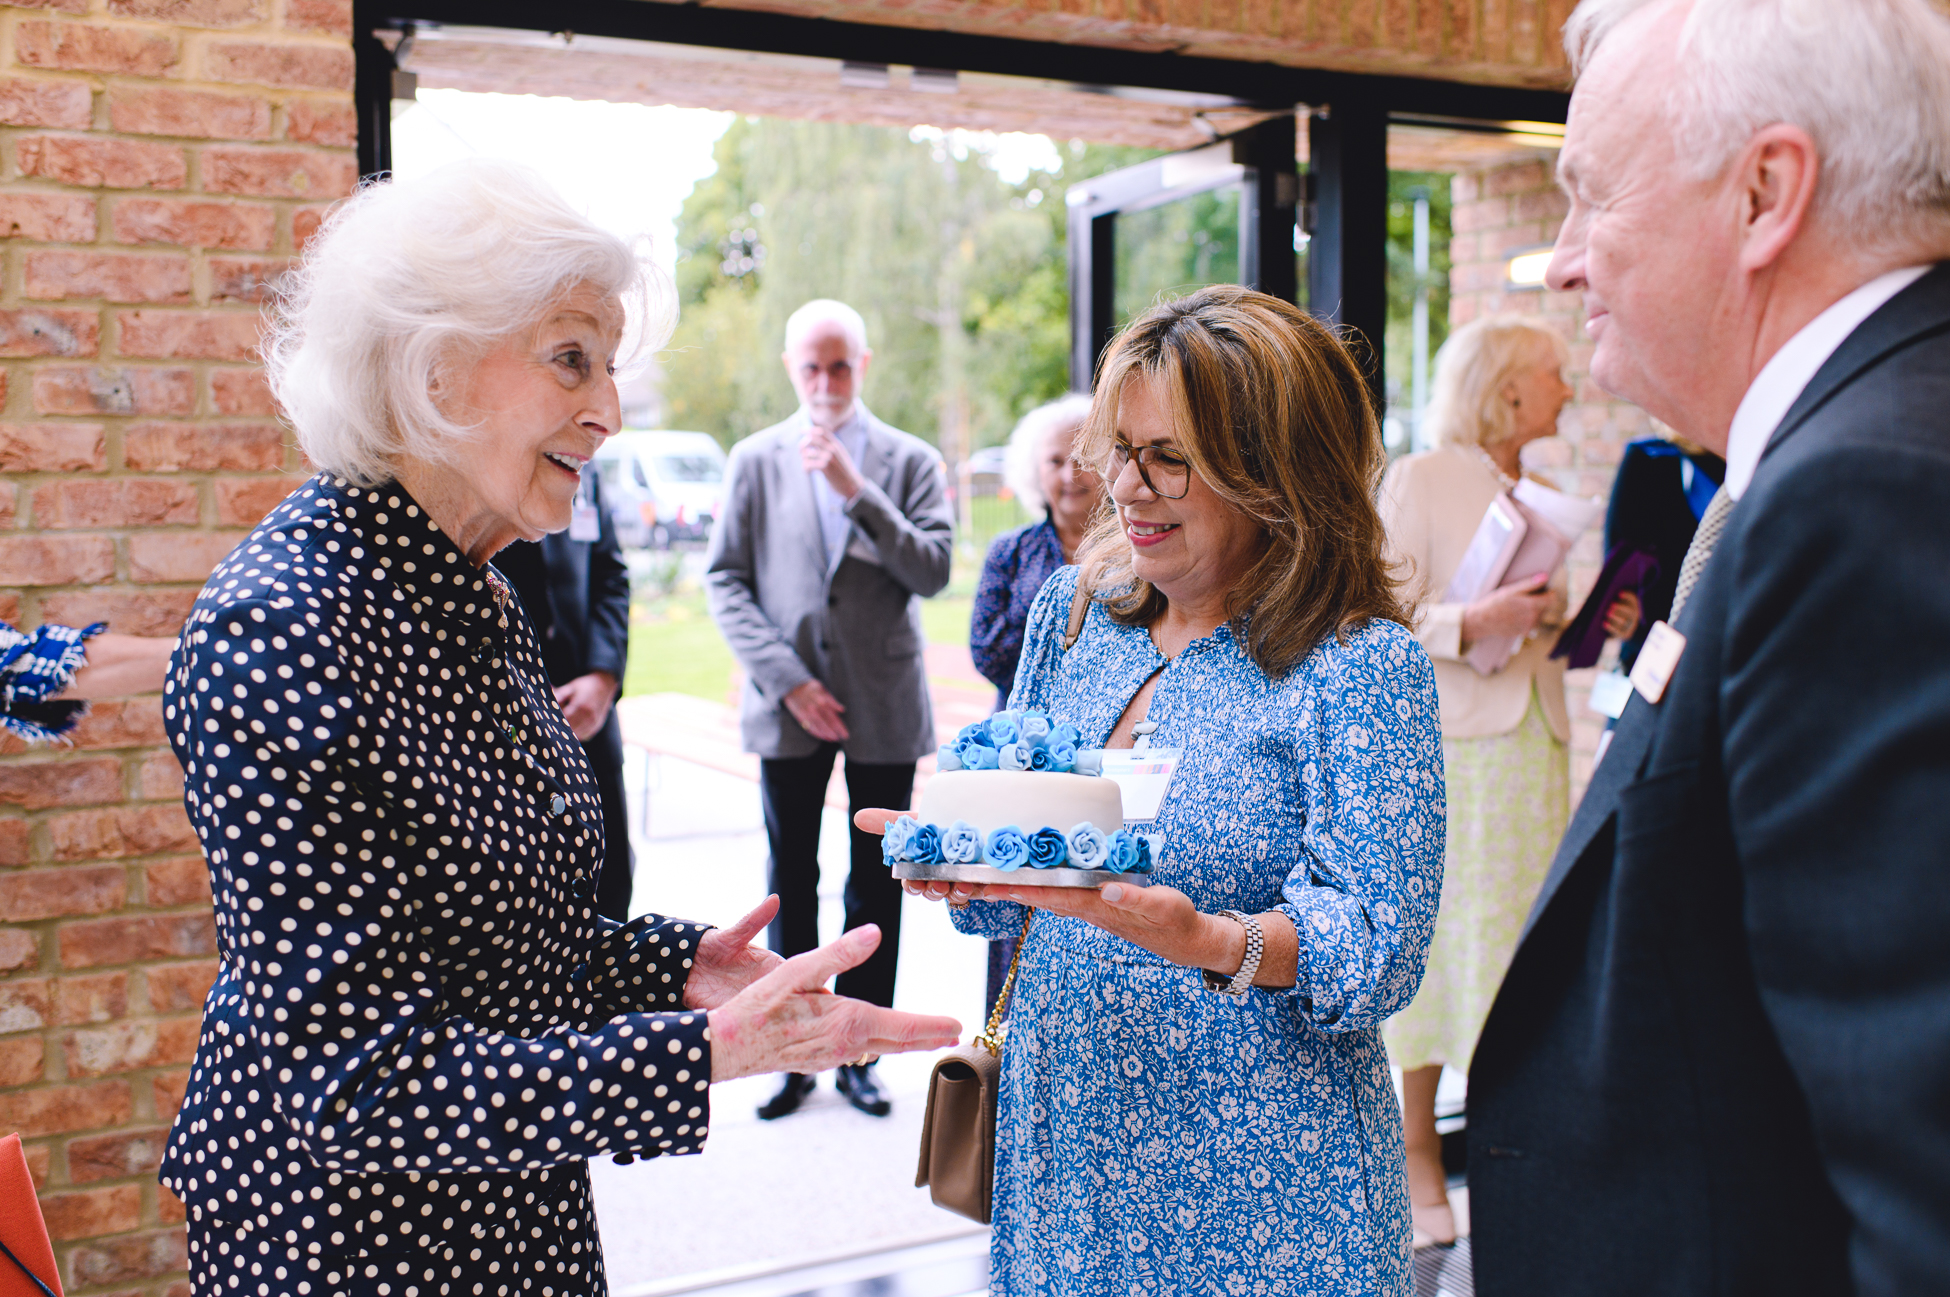 HRH Princess Alexandra unveils plaque to mark the grand opening of St Christopher's Centre for Awareness and Response at End of Life